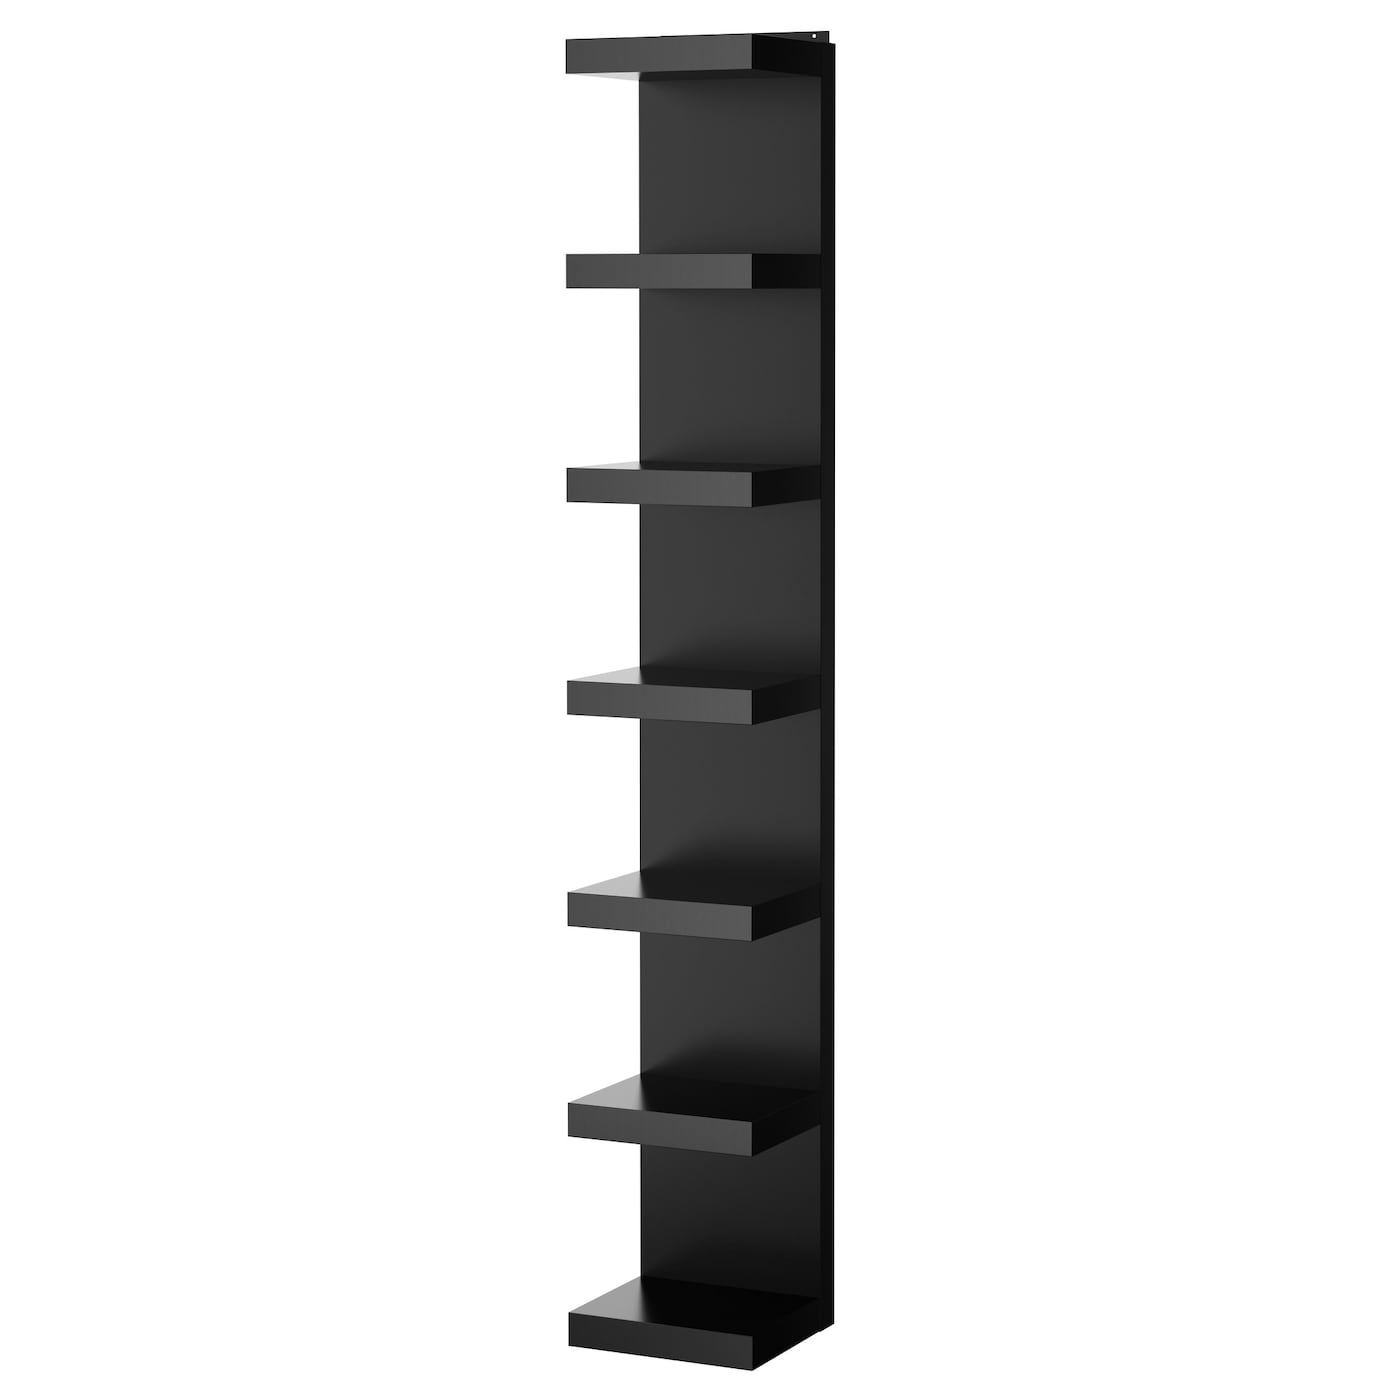 black furniture ikea. ikea lack wall shelf unit black furniture ikea p